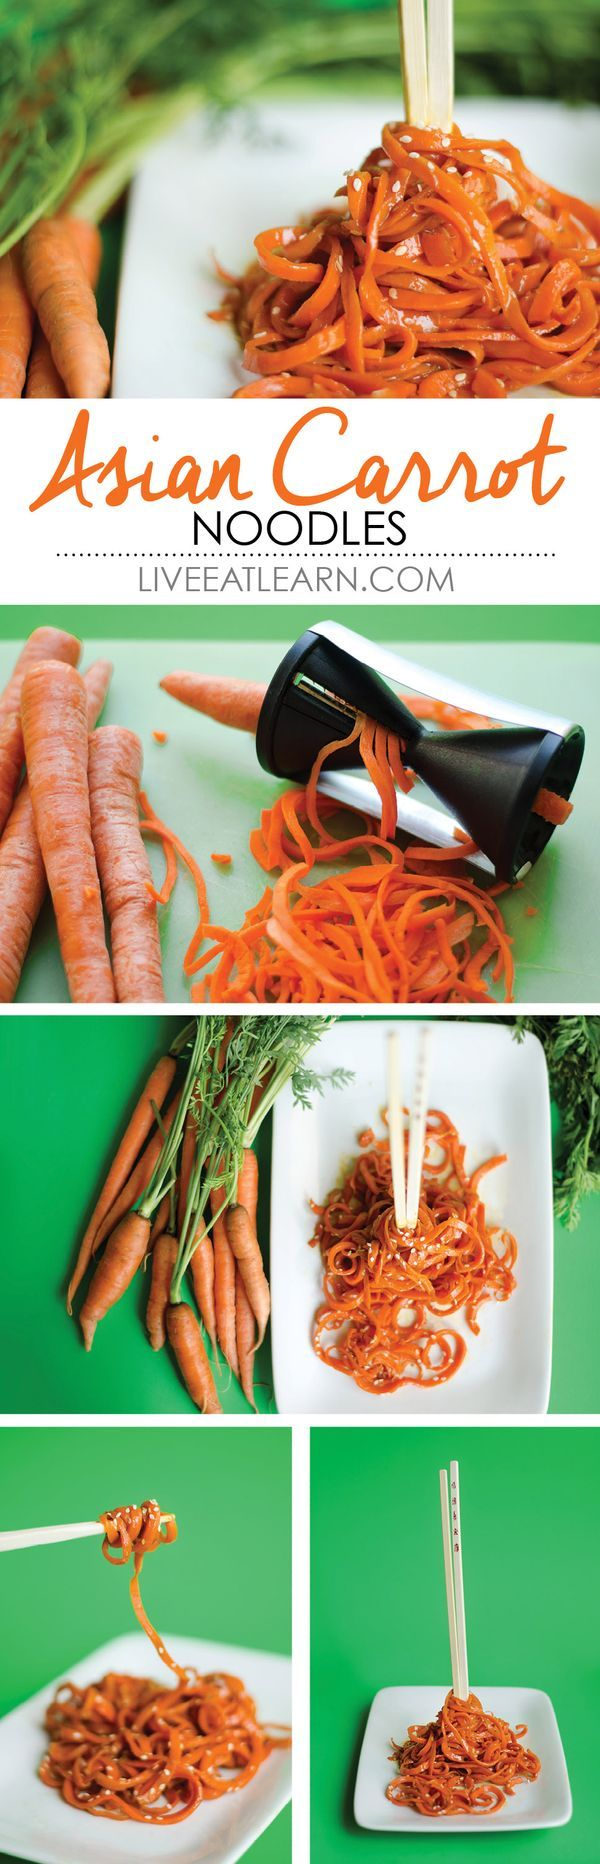 Aiming for some clean eating? Try out these carrot noodles in a simple Asian sauce! High in fiber, low in calories and fat, so healthy, and delicious!